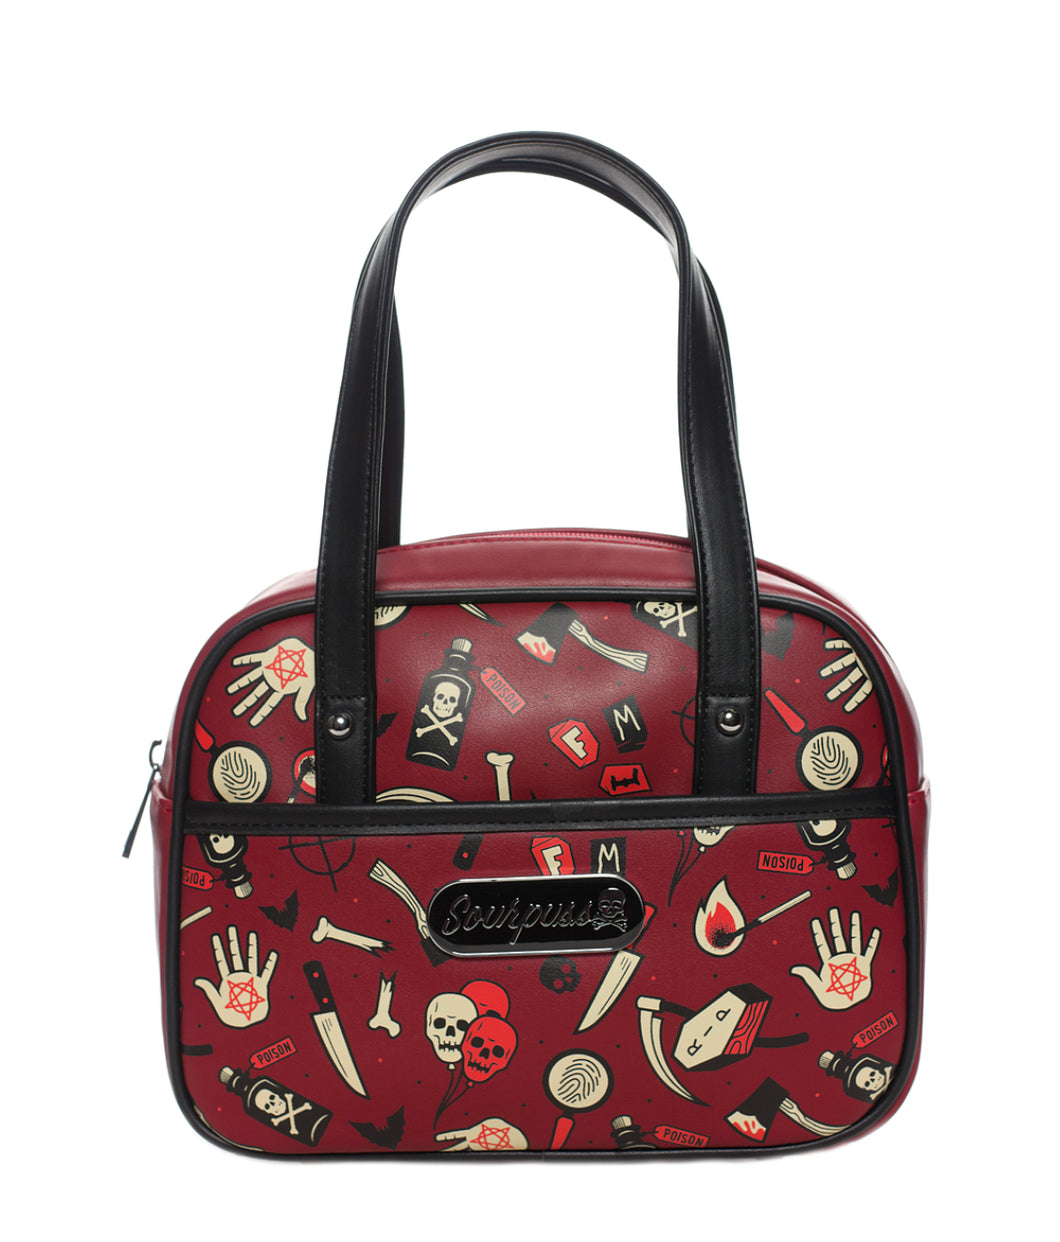 True Crime Mini Bowler Purse